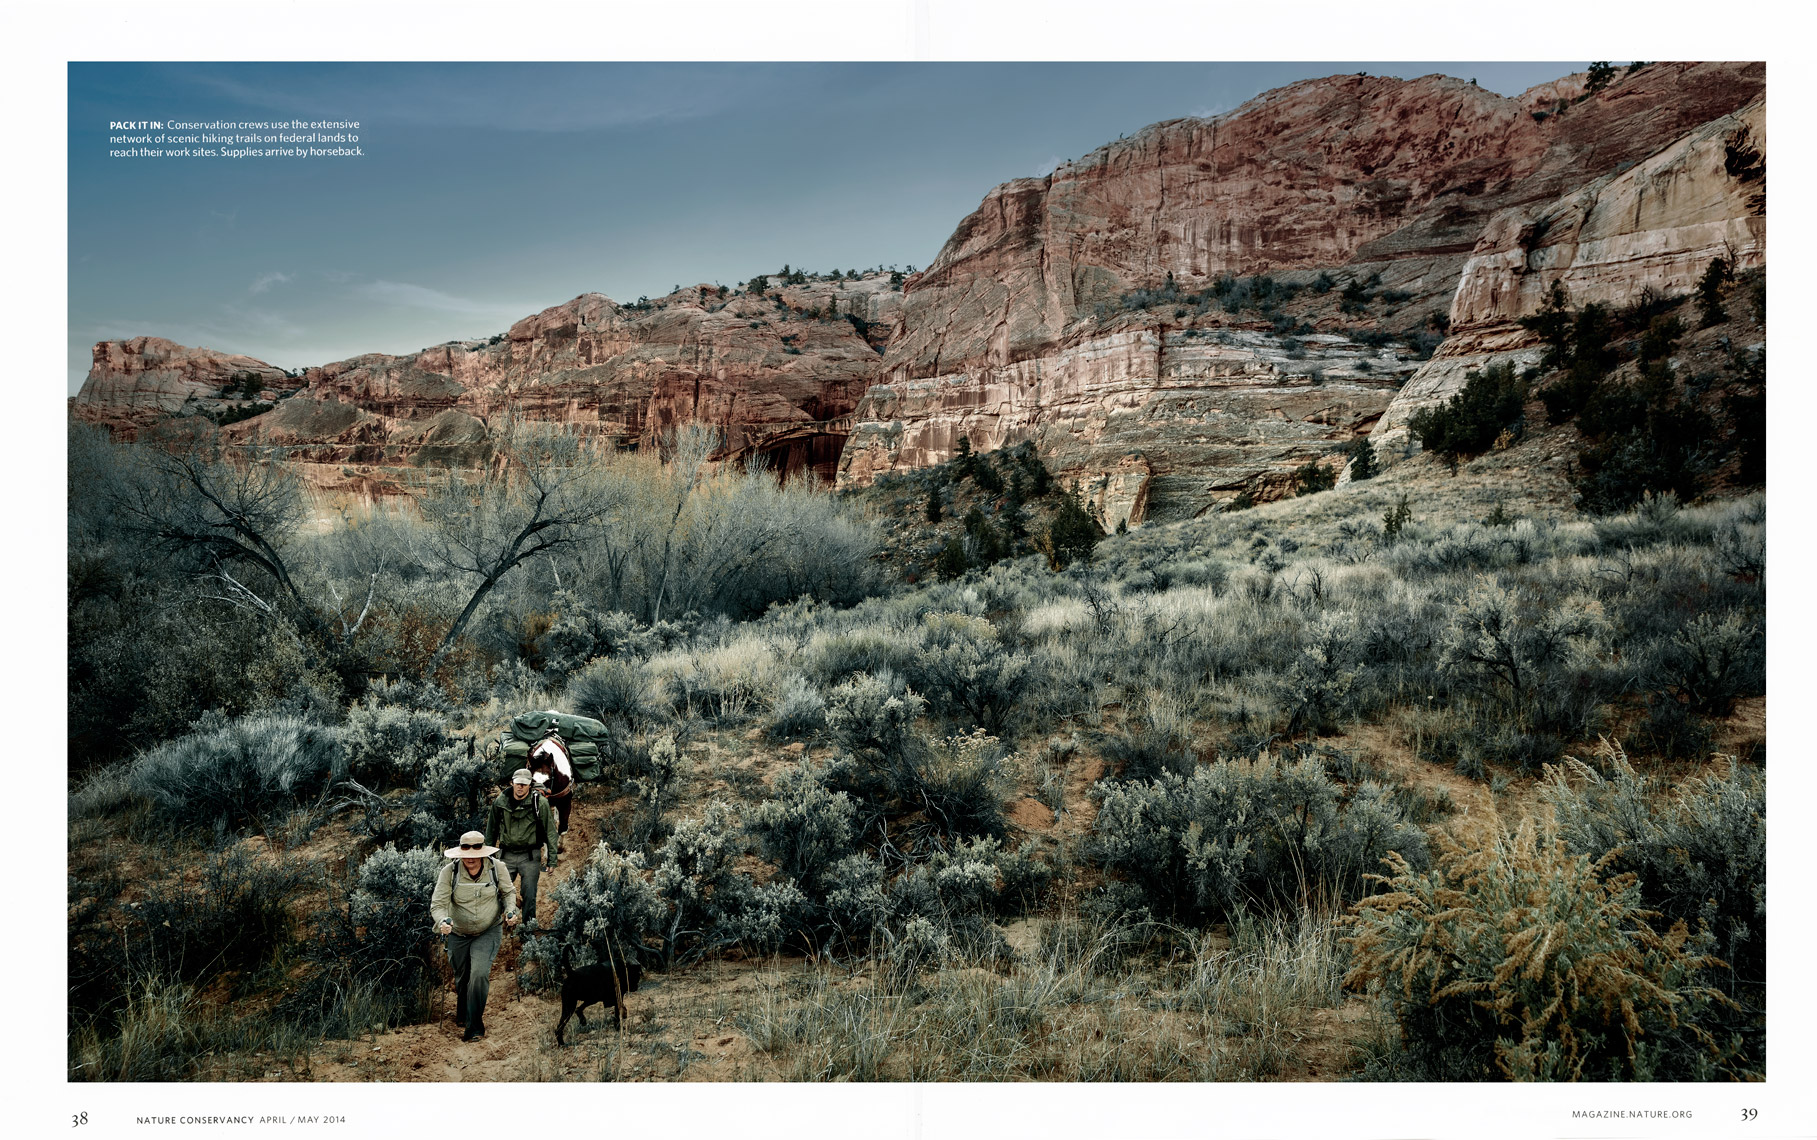 Nature Conservancy Magazine - Cutting A Clear Path Feature - Spread 4 - April/May 2014